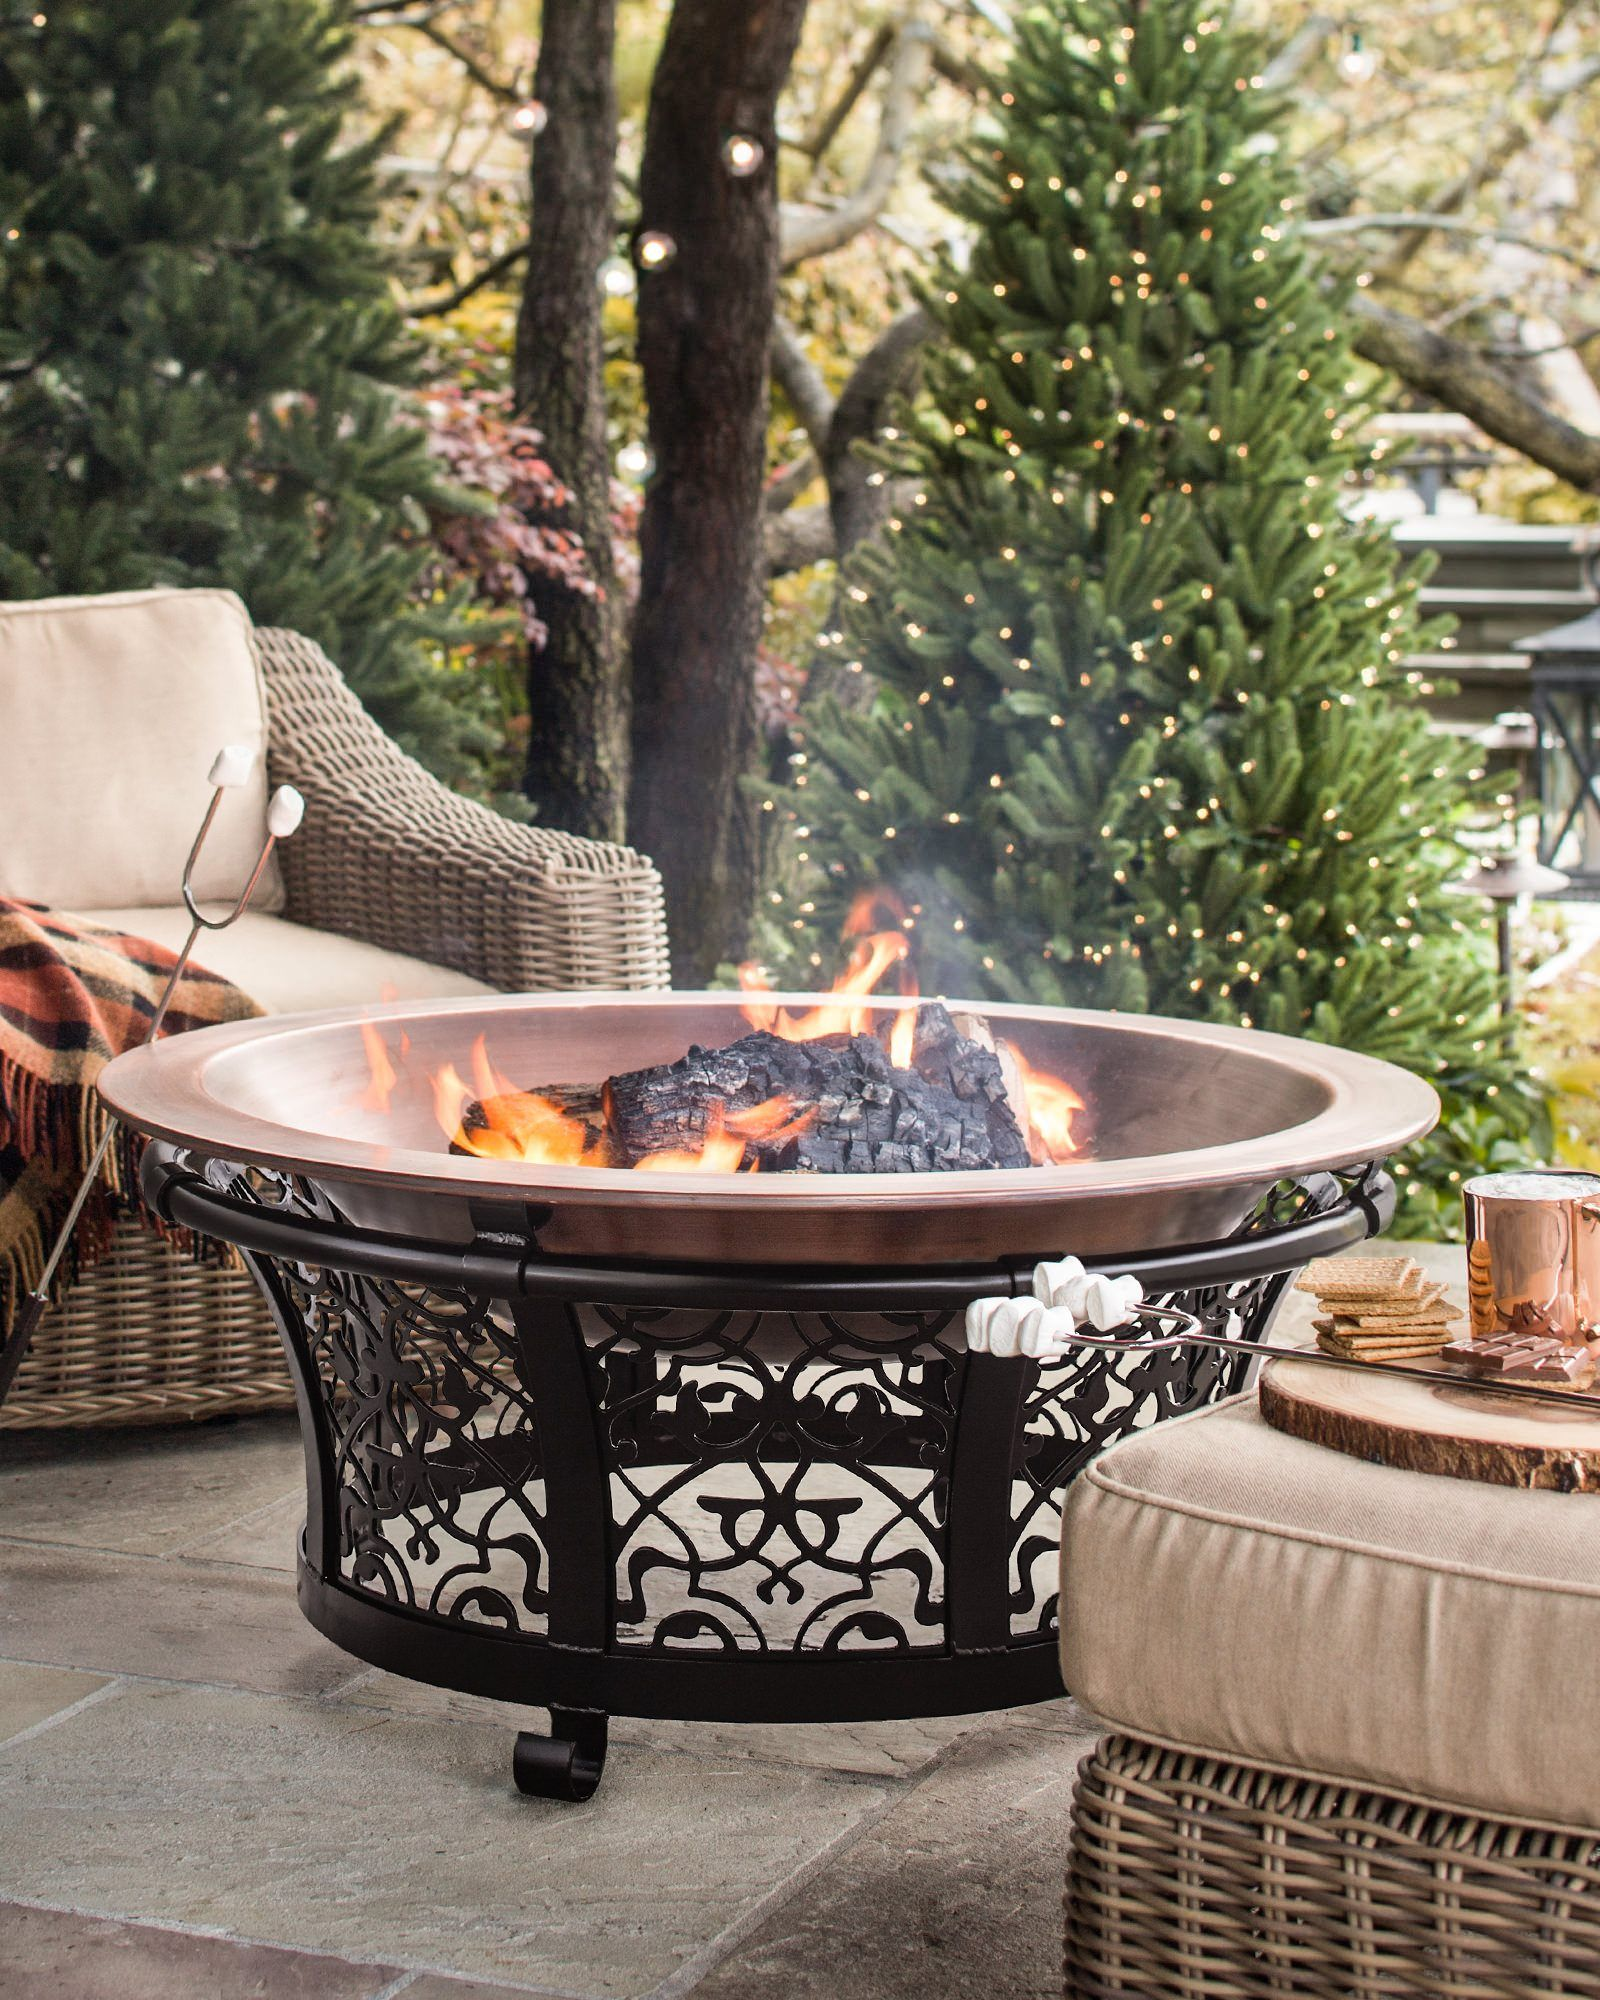 Nice Decorative Cast Iron Steel Fire Pit With Copper Bowl | #HolidayEssentials  #BalsamHill